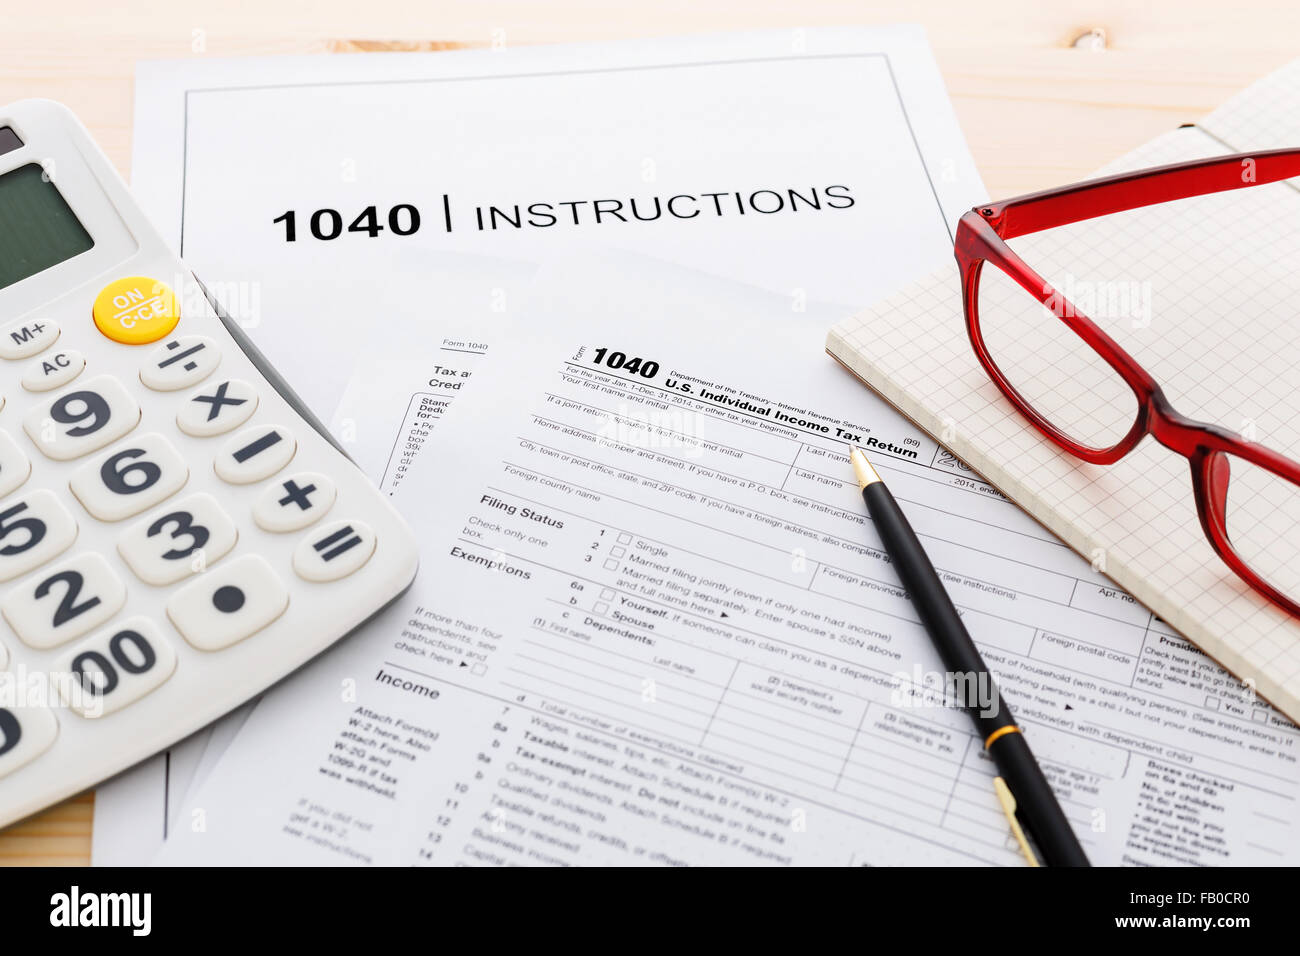 Income Tax Income Return Form And Instruction With Calculator And